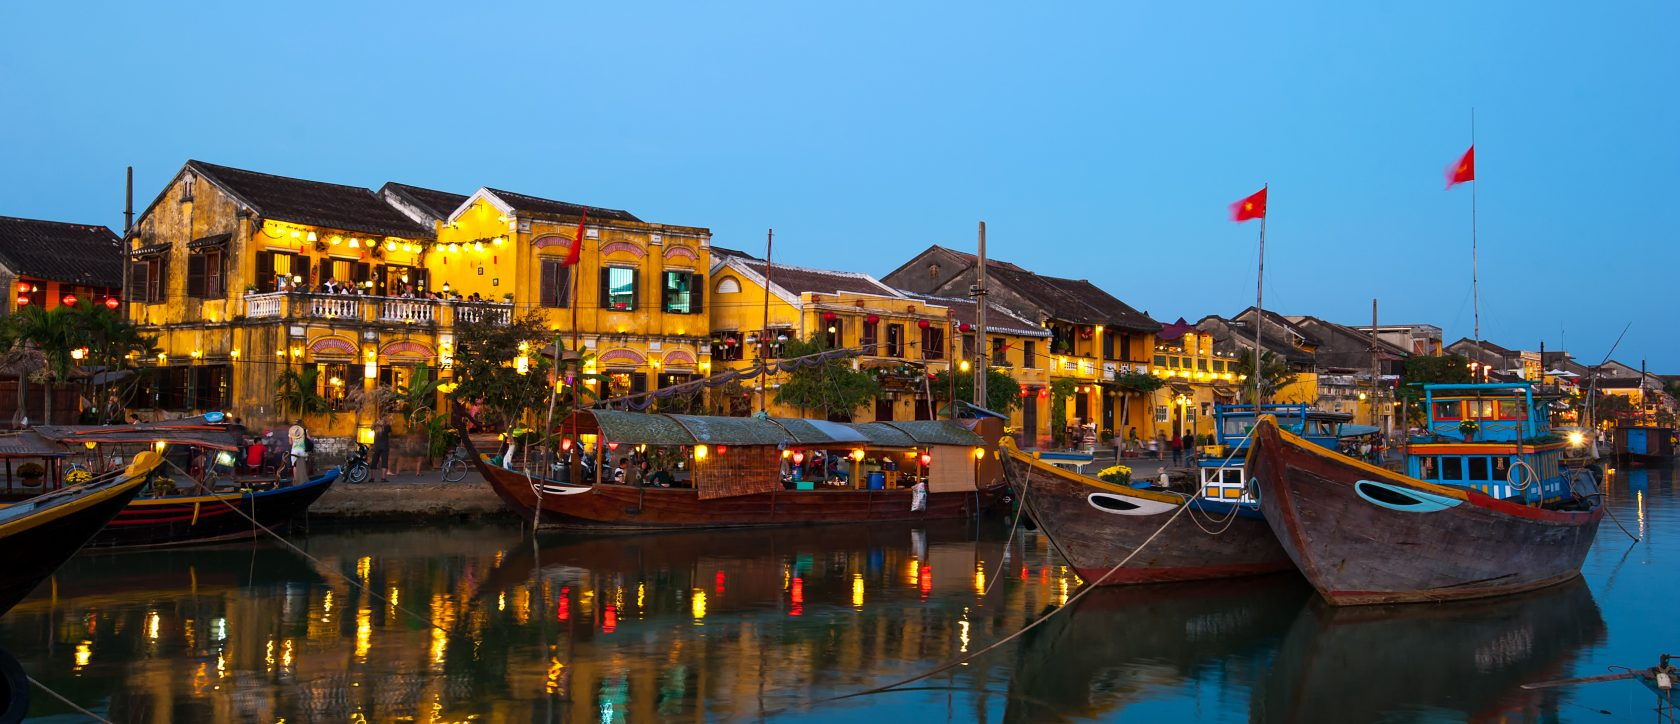 hoi an holiday vietnam from Spain and Italy Europe